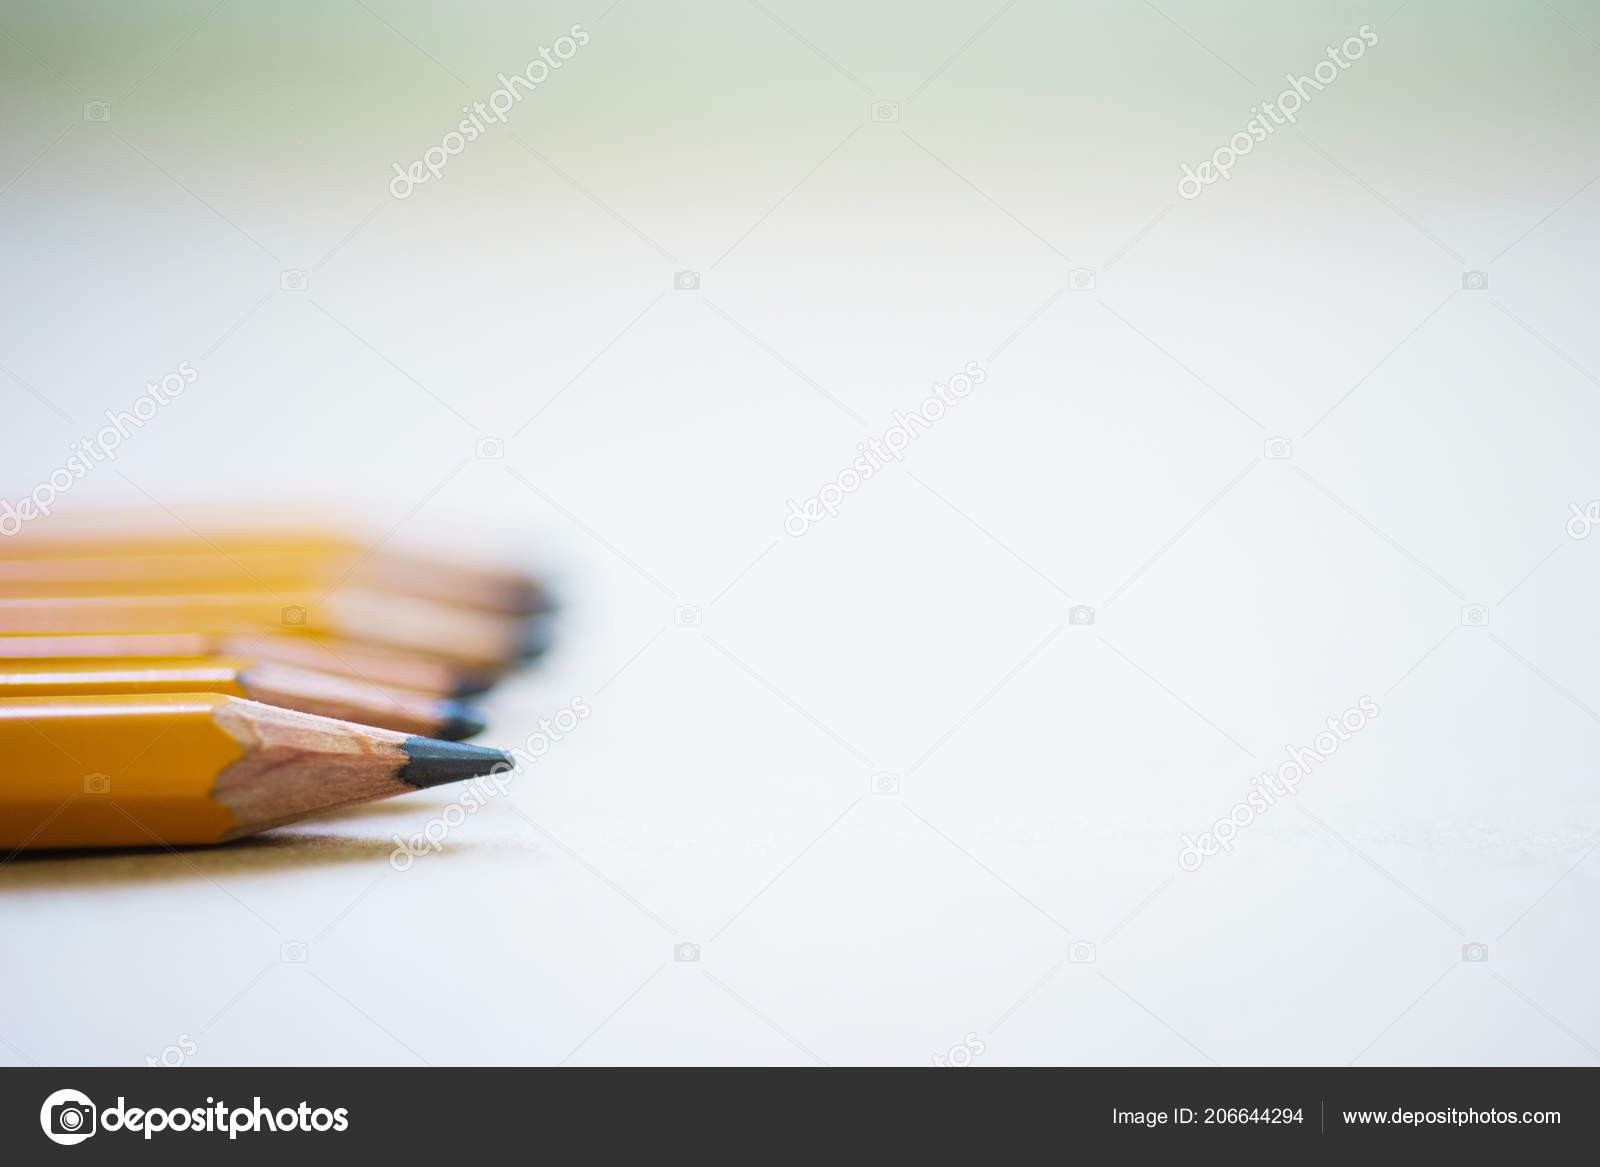 Pencils sketching paper copy space concept drawing school artist composition stock photo